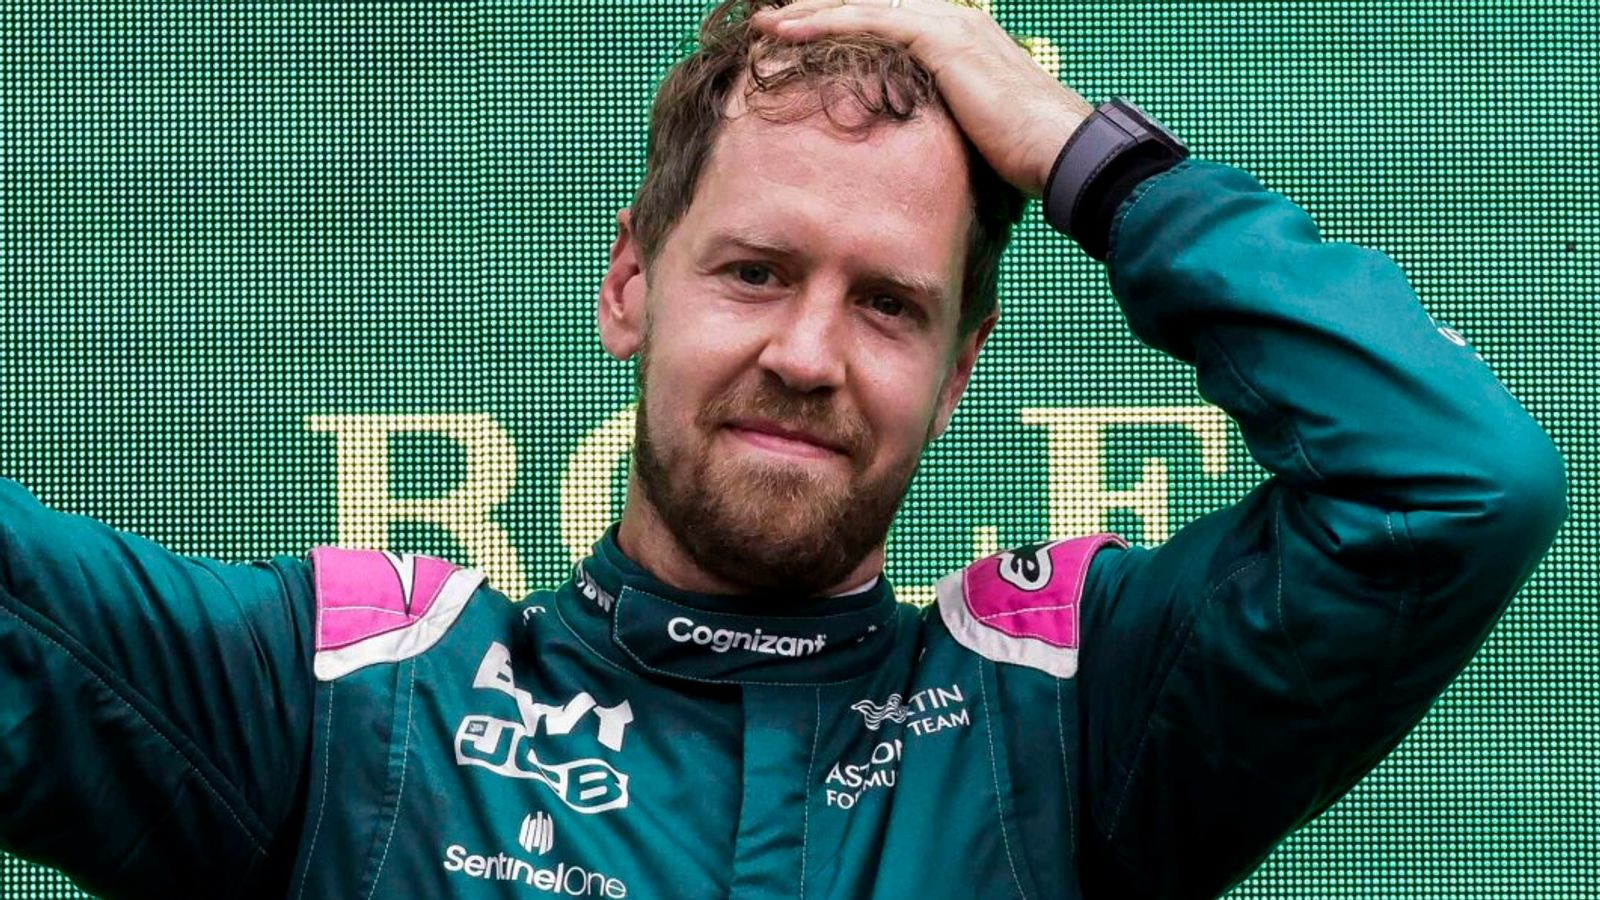 Hungarian GP: Sebastian Vettel's second place at risk after insufficient fuel sample after race